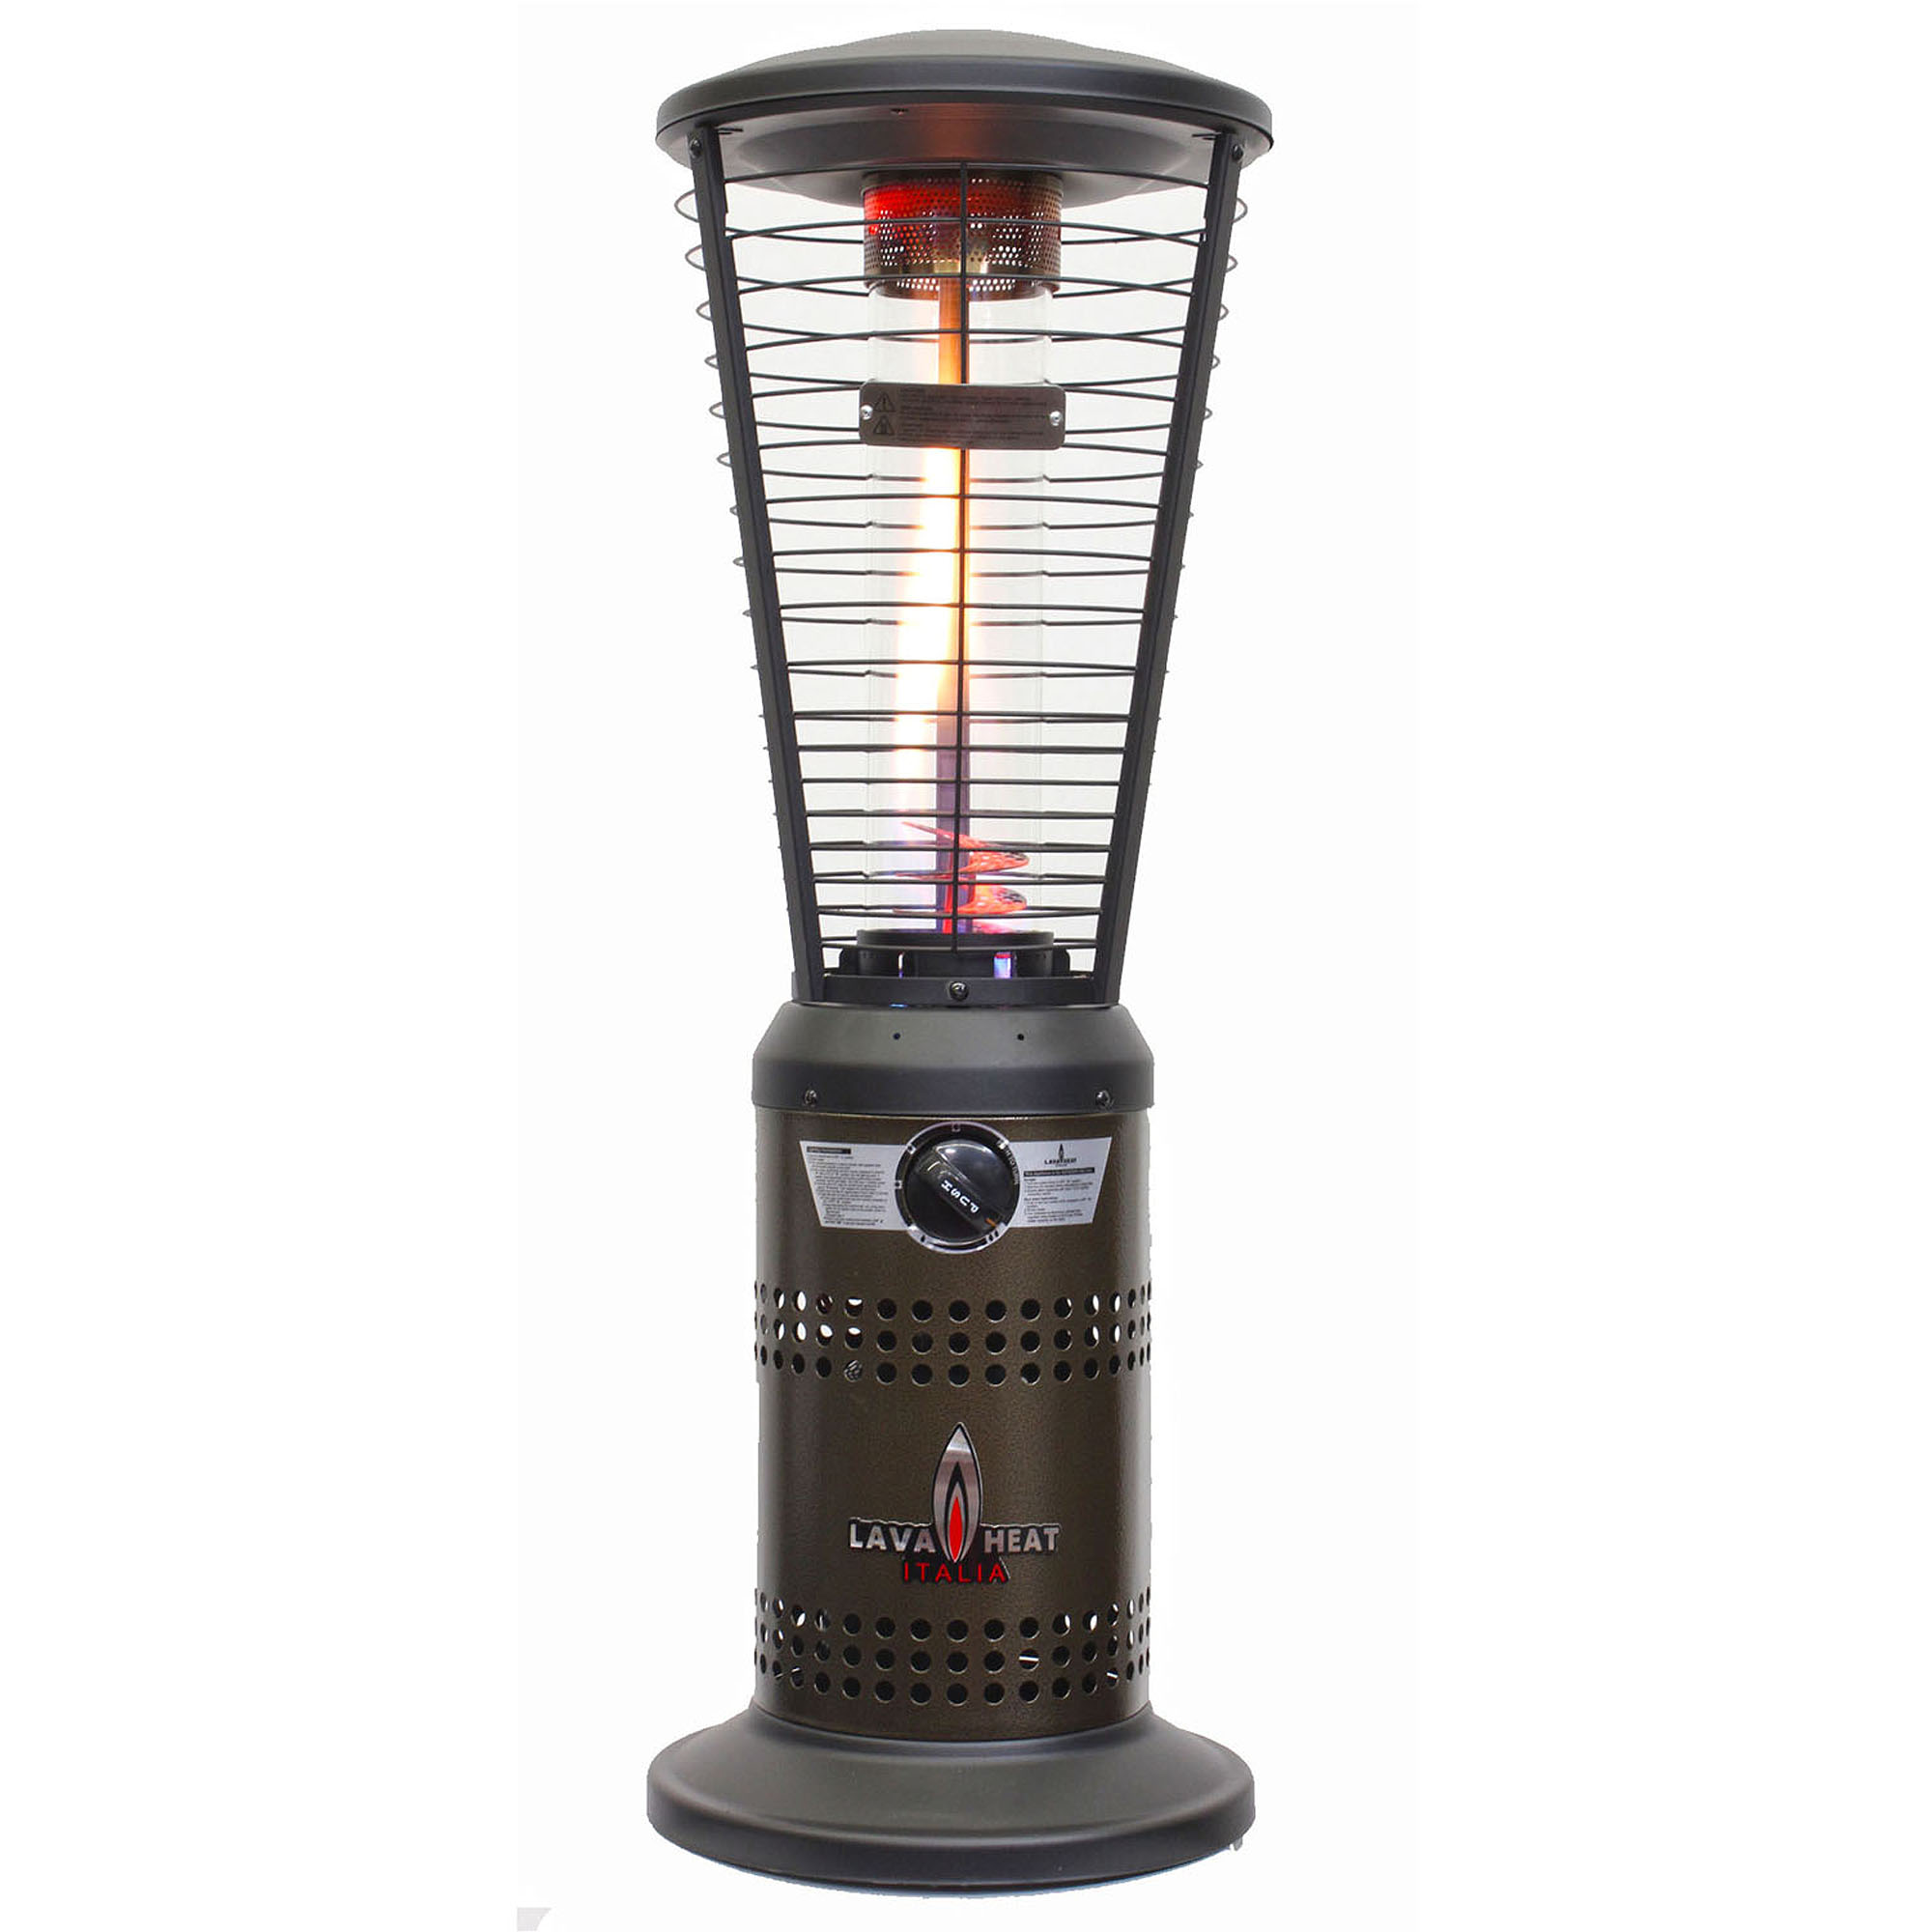 lava heat italia mini ember tabletop liquid propane patio heater heritage bronze finish walmartcom